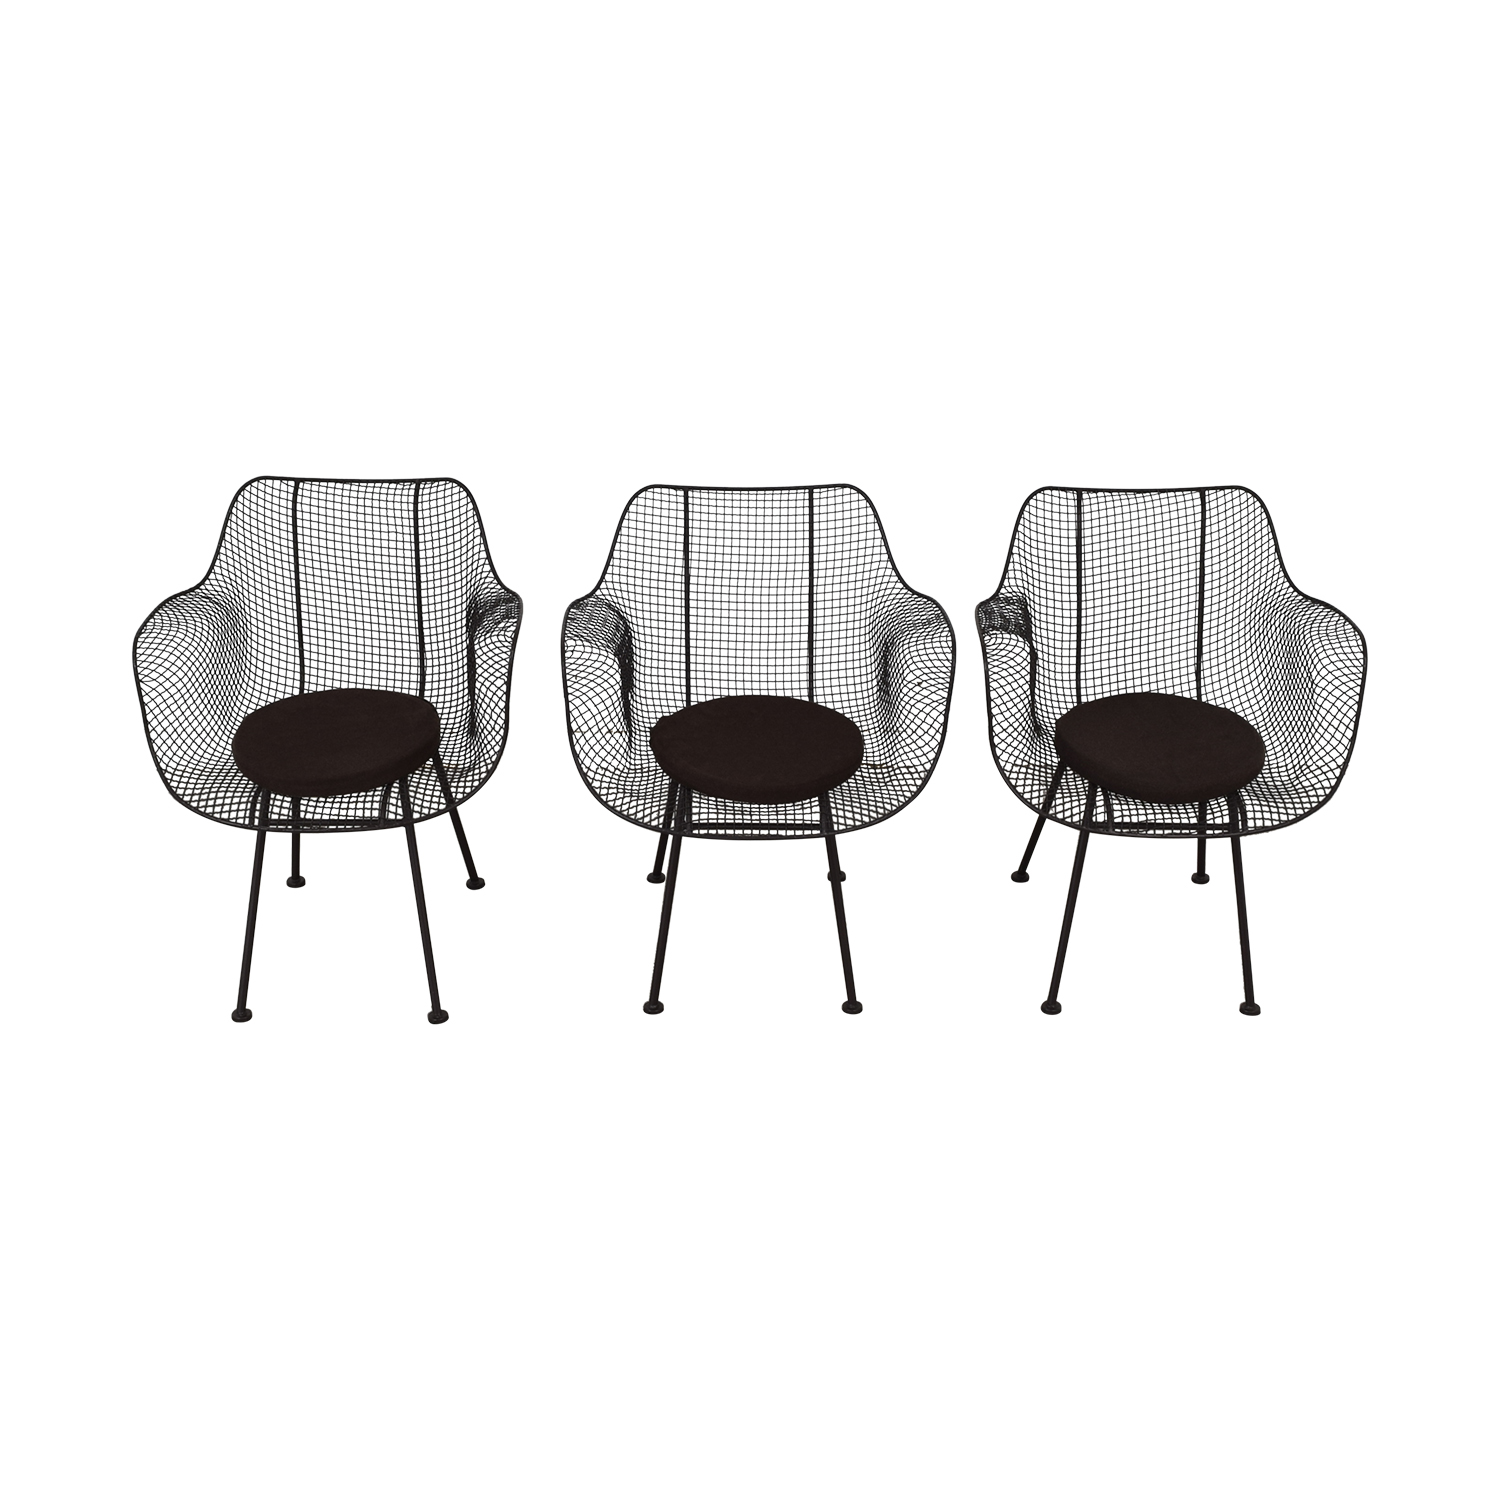 Restoration Hardware Restoration Hardware Metal Tub Dining Chairs used